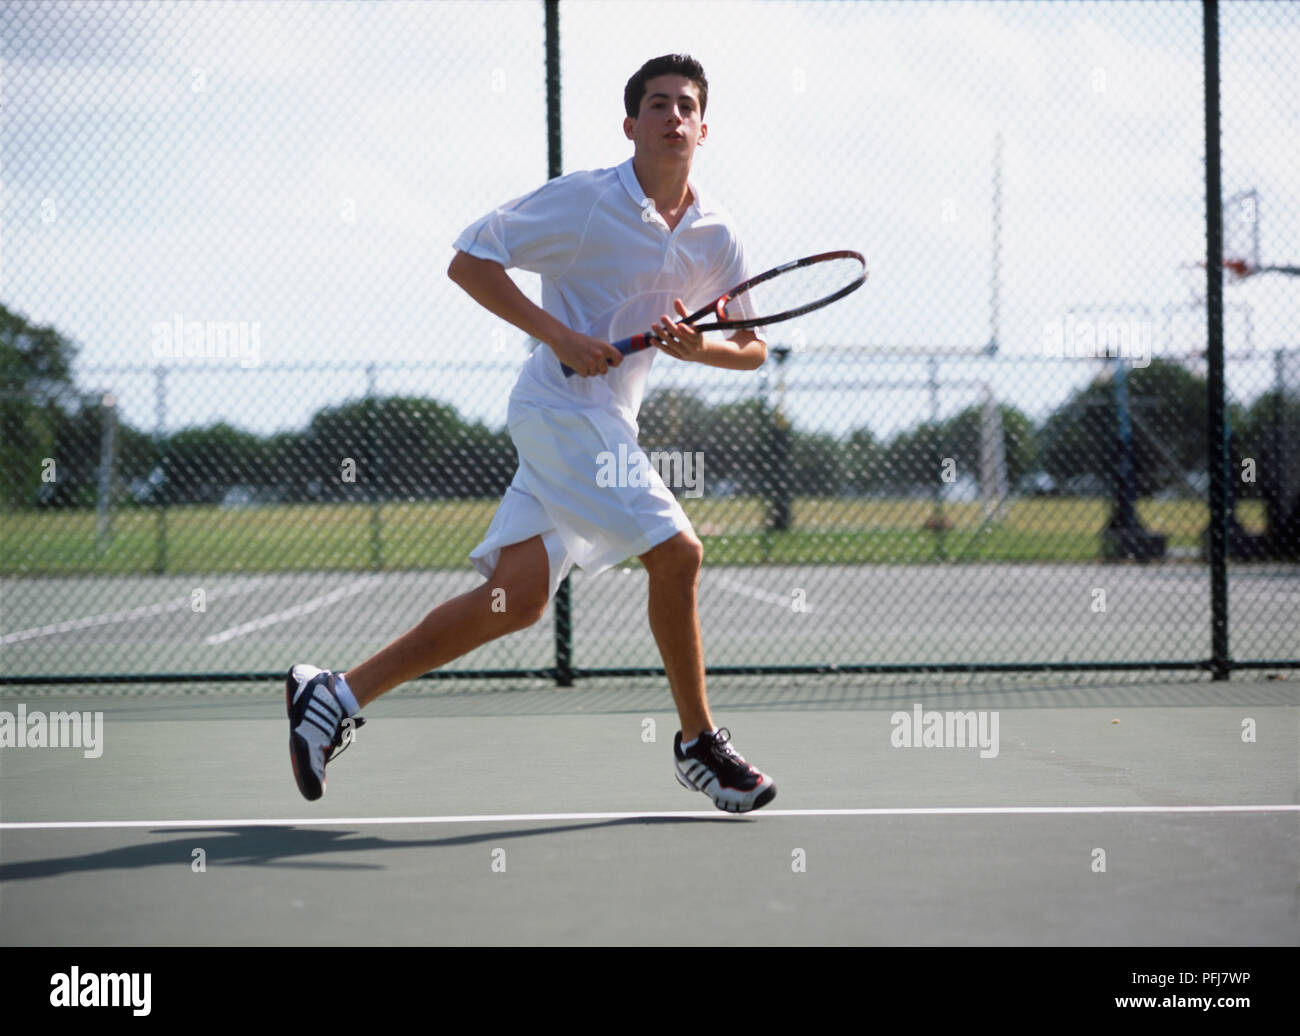 Boy In White Tennis Clothes Running Across Tennis Court Holding Tennis Racket Lightly In Both Hands Stock Photo Alamy